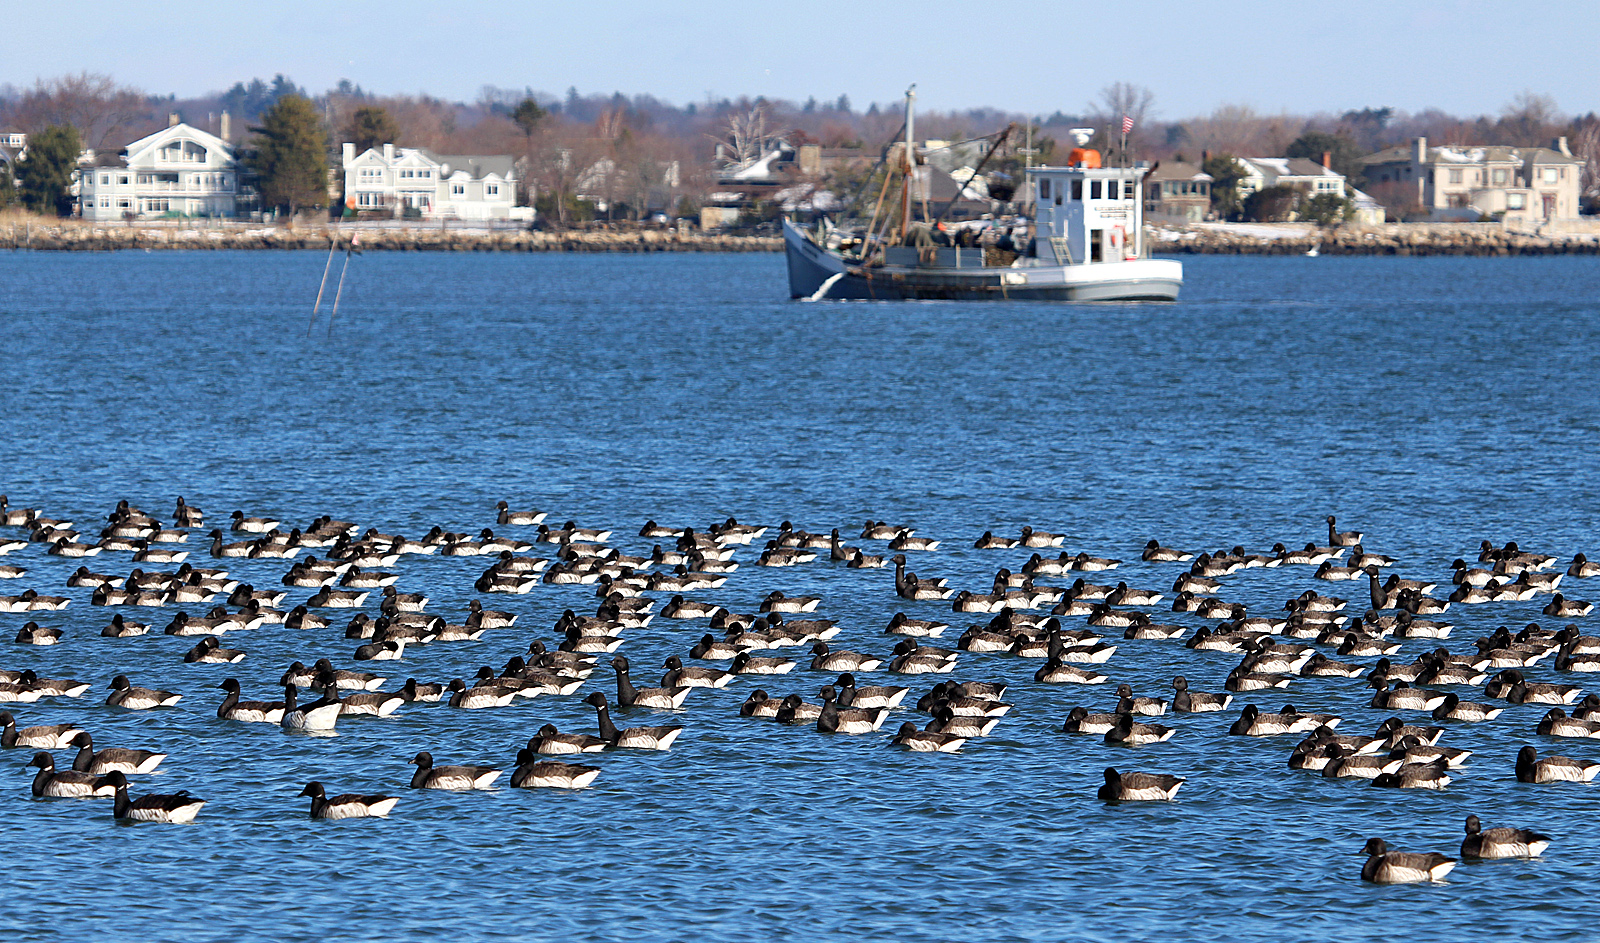 Photo by Chris Bosak A huge flock of Brant congregates as an oysterboat works the waters of Long Island Sound off Calf Pasture Beach in Norwalk this winter.